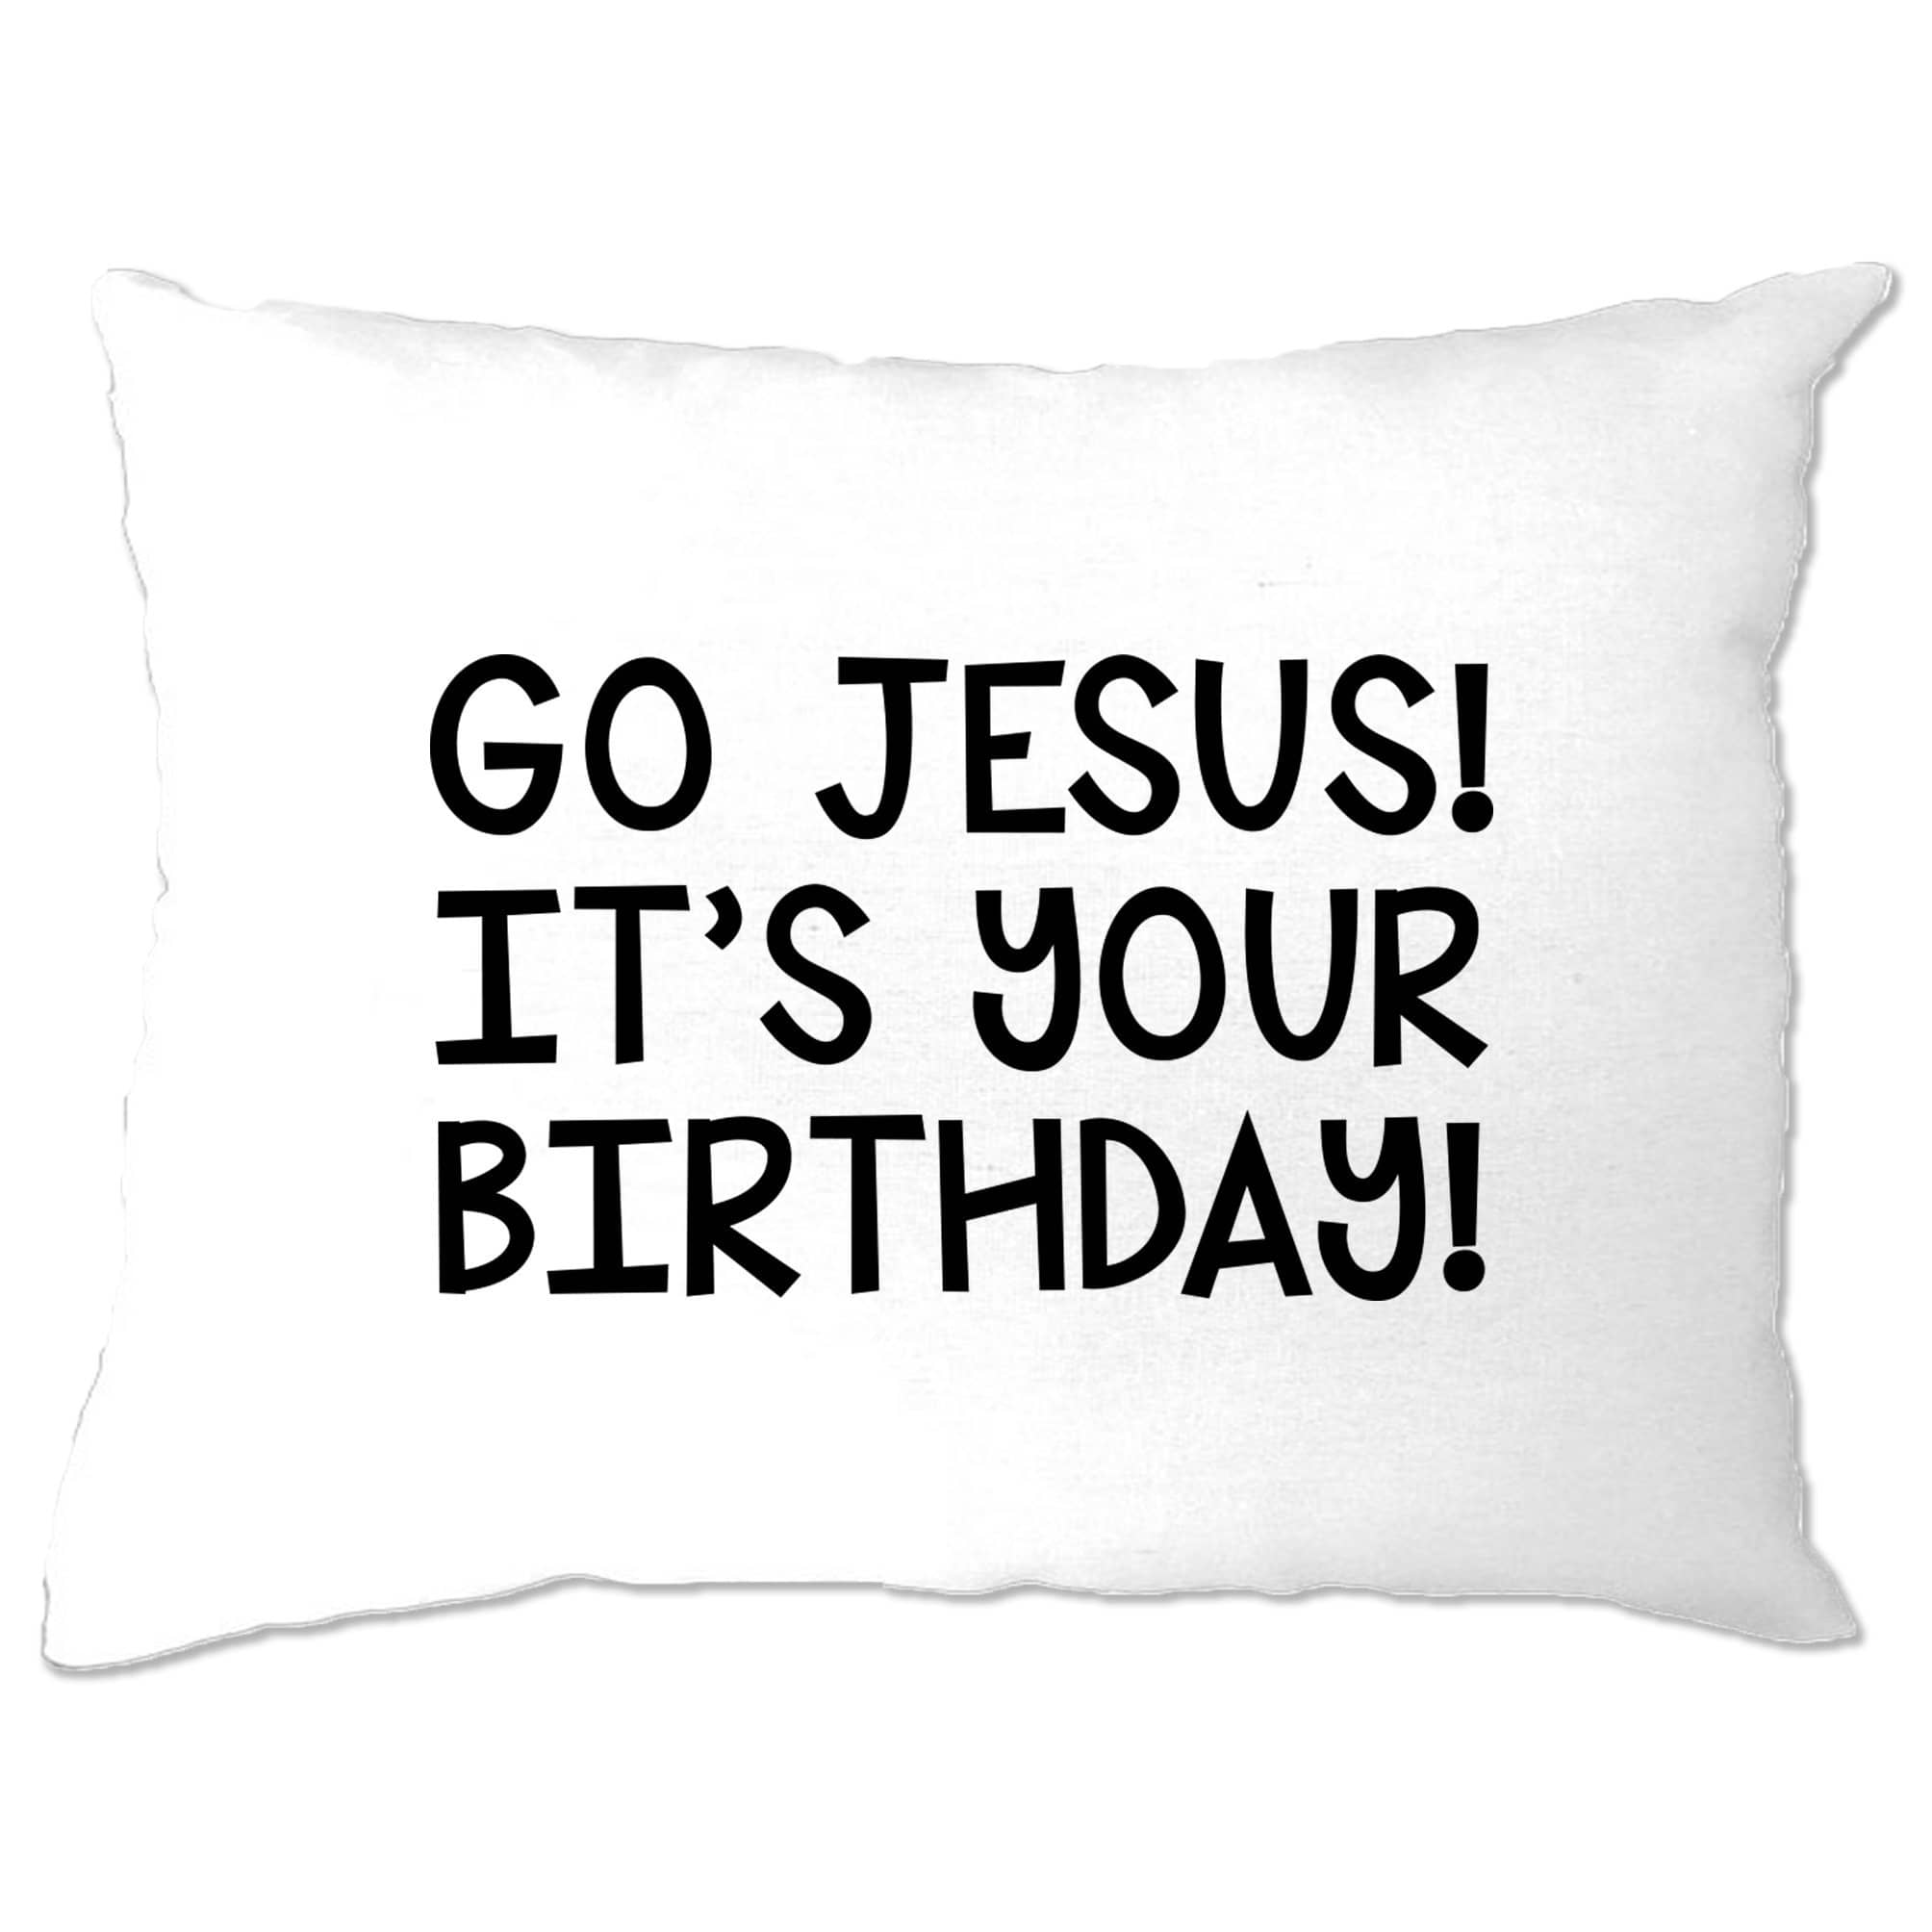 Funny Christmas Pillow Case Go Jesus! It's Your Birthday!